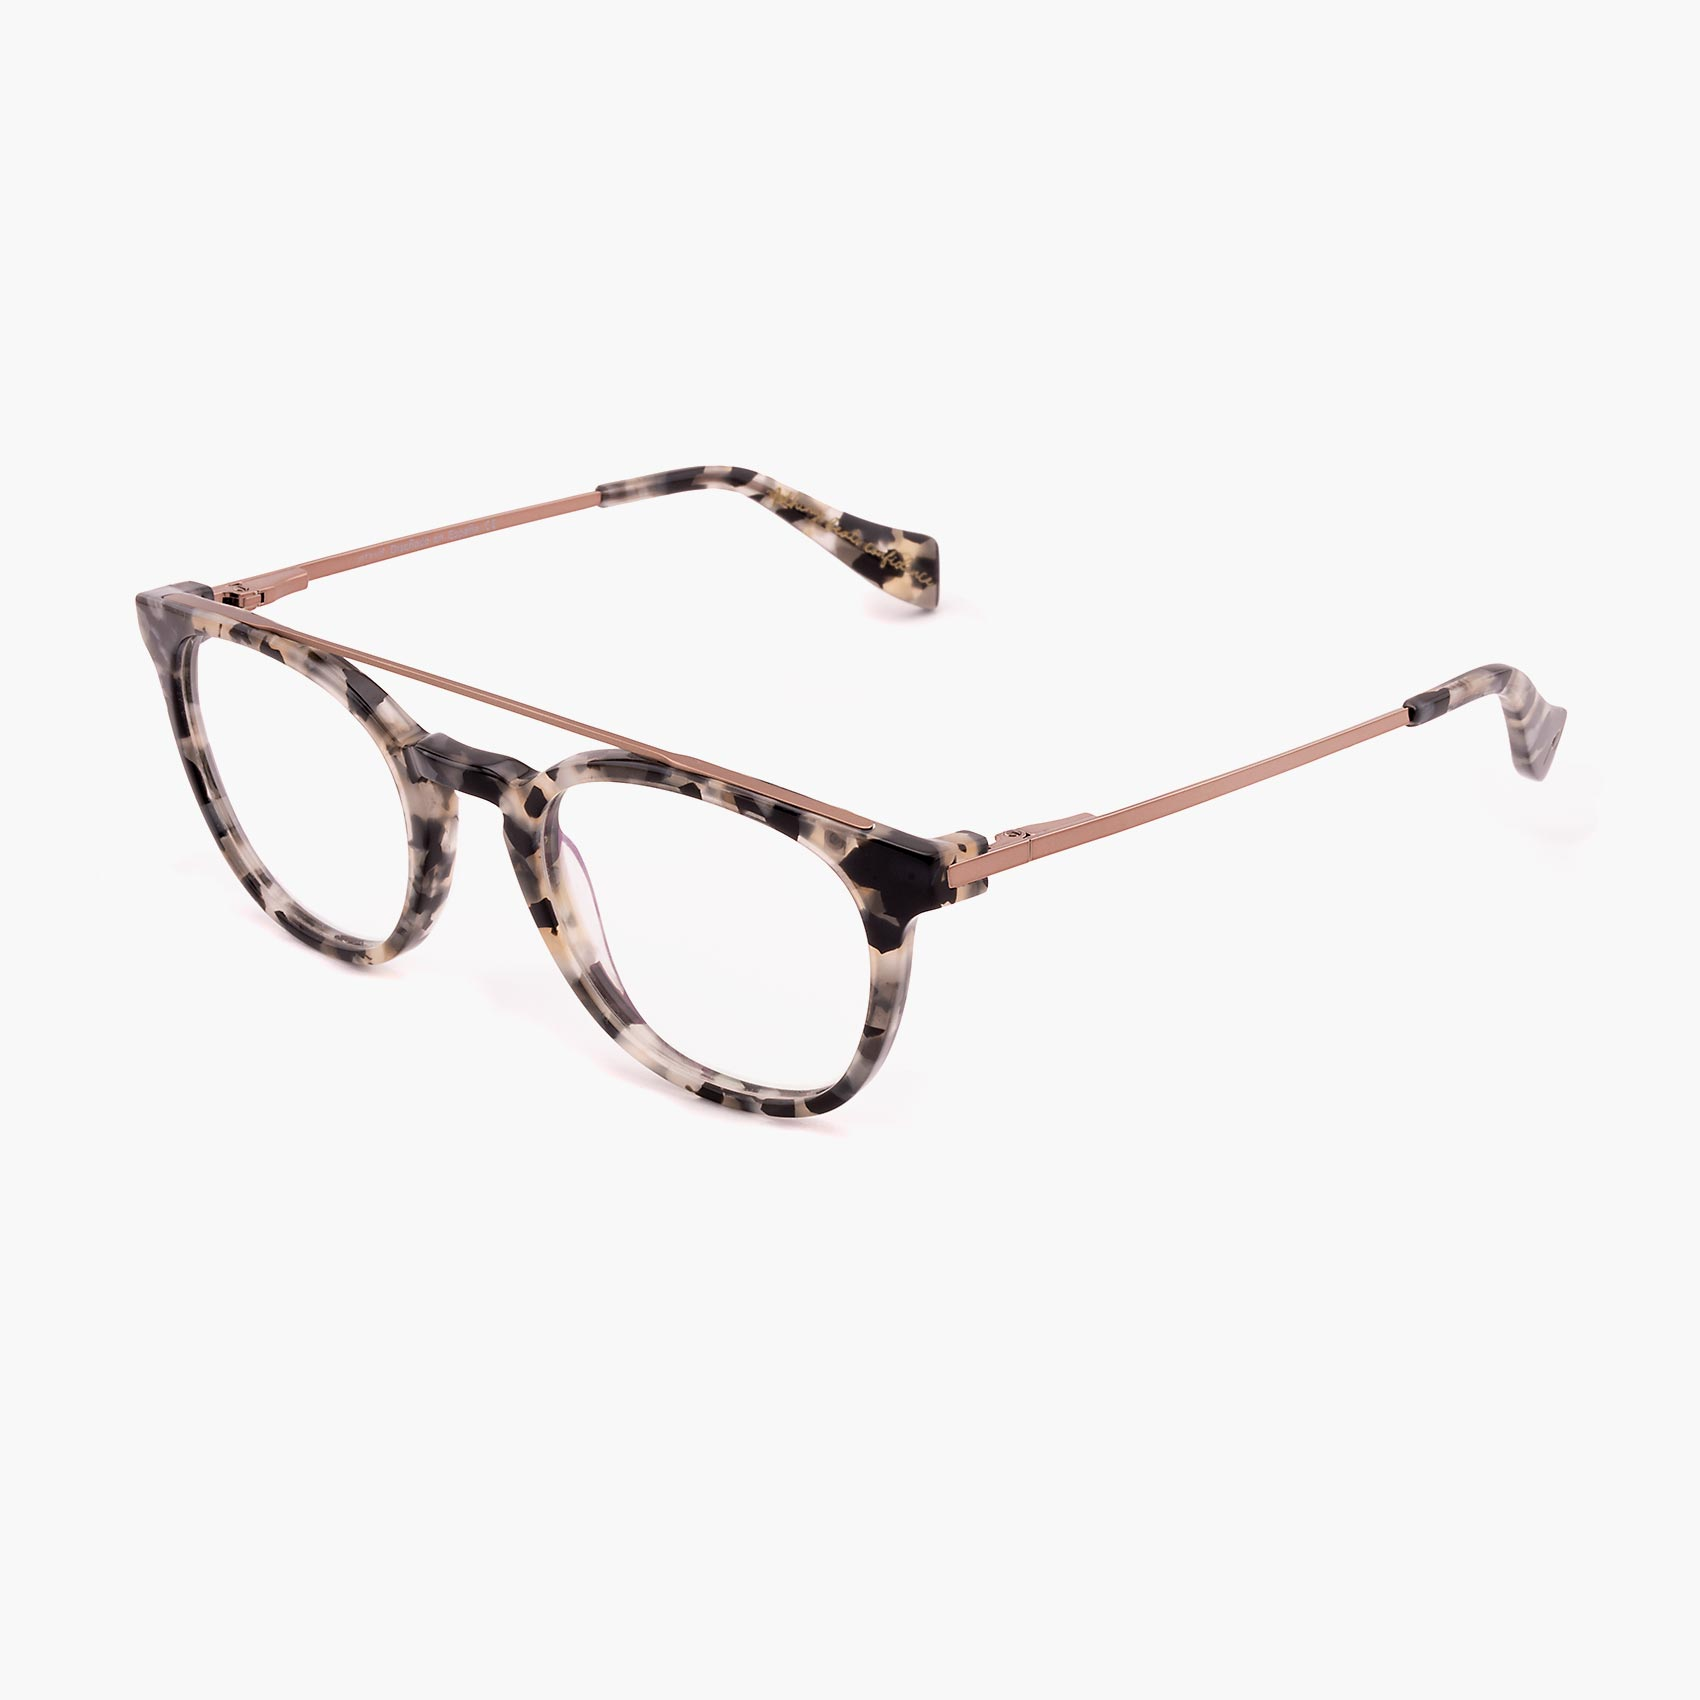 Proud eyewear Hilary C2 P gafas de vista puente doble